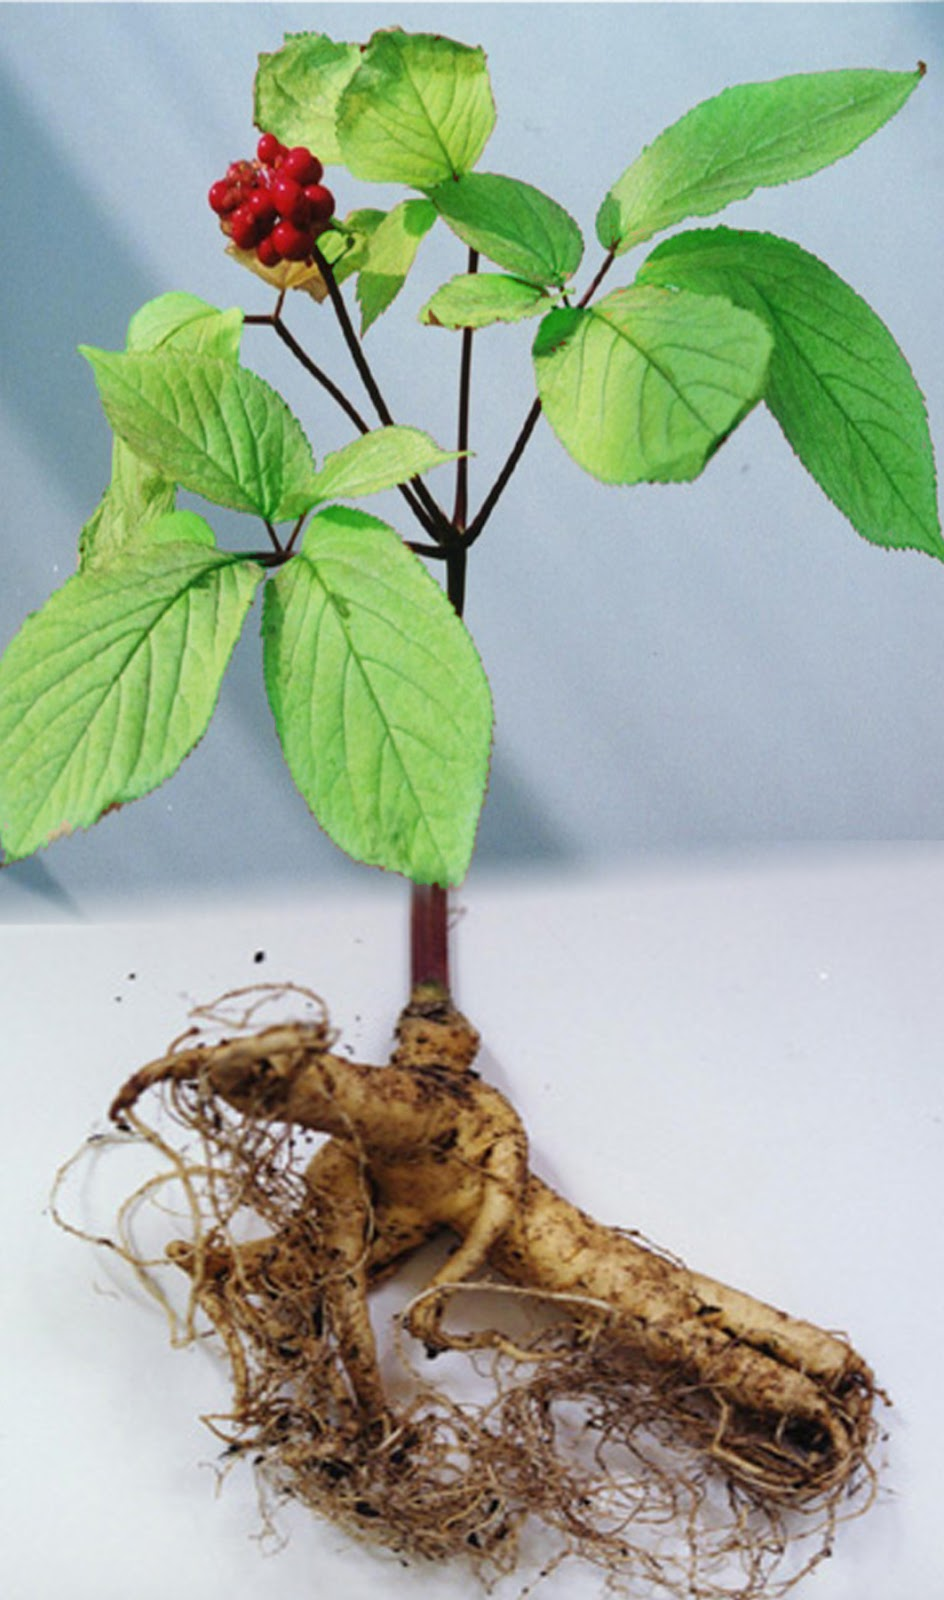 image of ginseng plant - used in China and Asian countries for 2000 years as tonic, herbal, natural remedy for various ailments including impotence